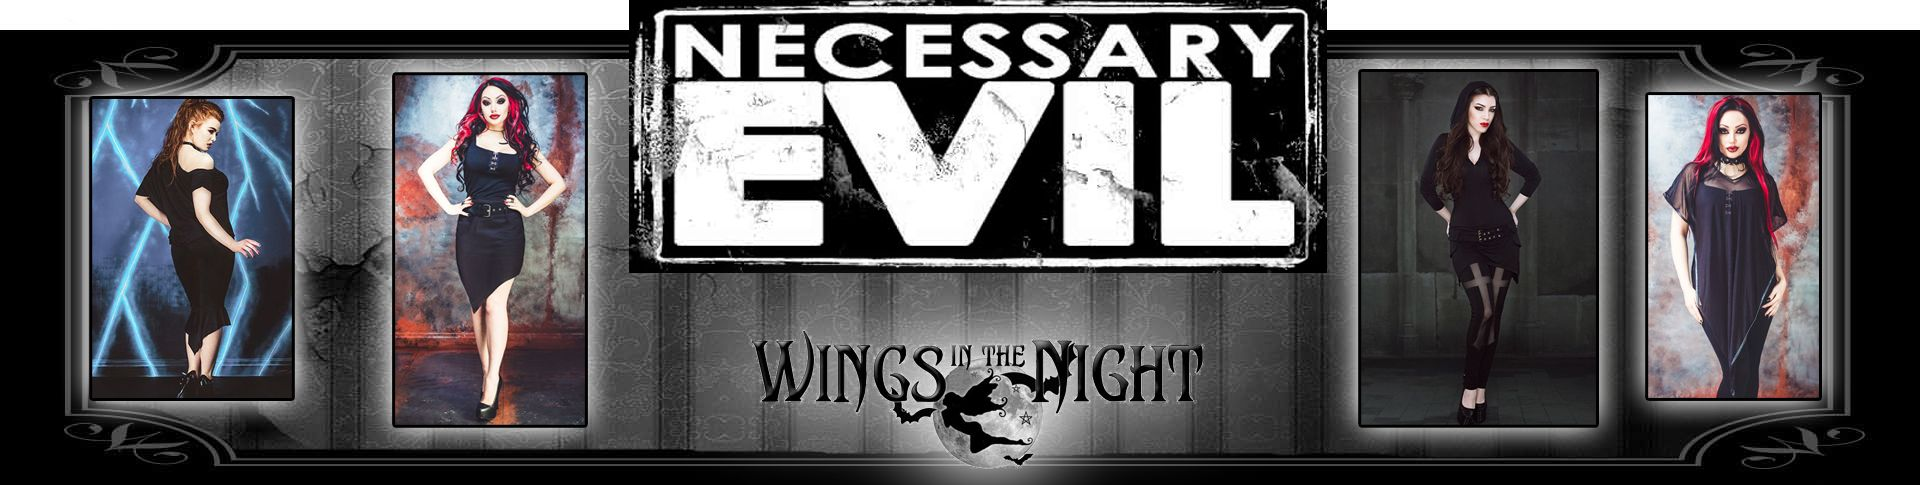 Necessary Evil Gothic Clothing for Men & Women available from Wings in the Night